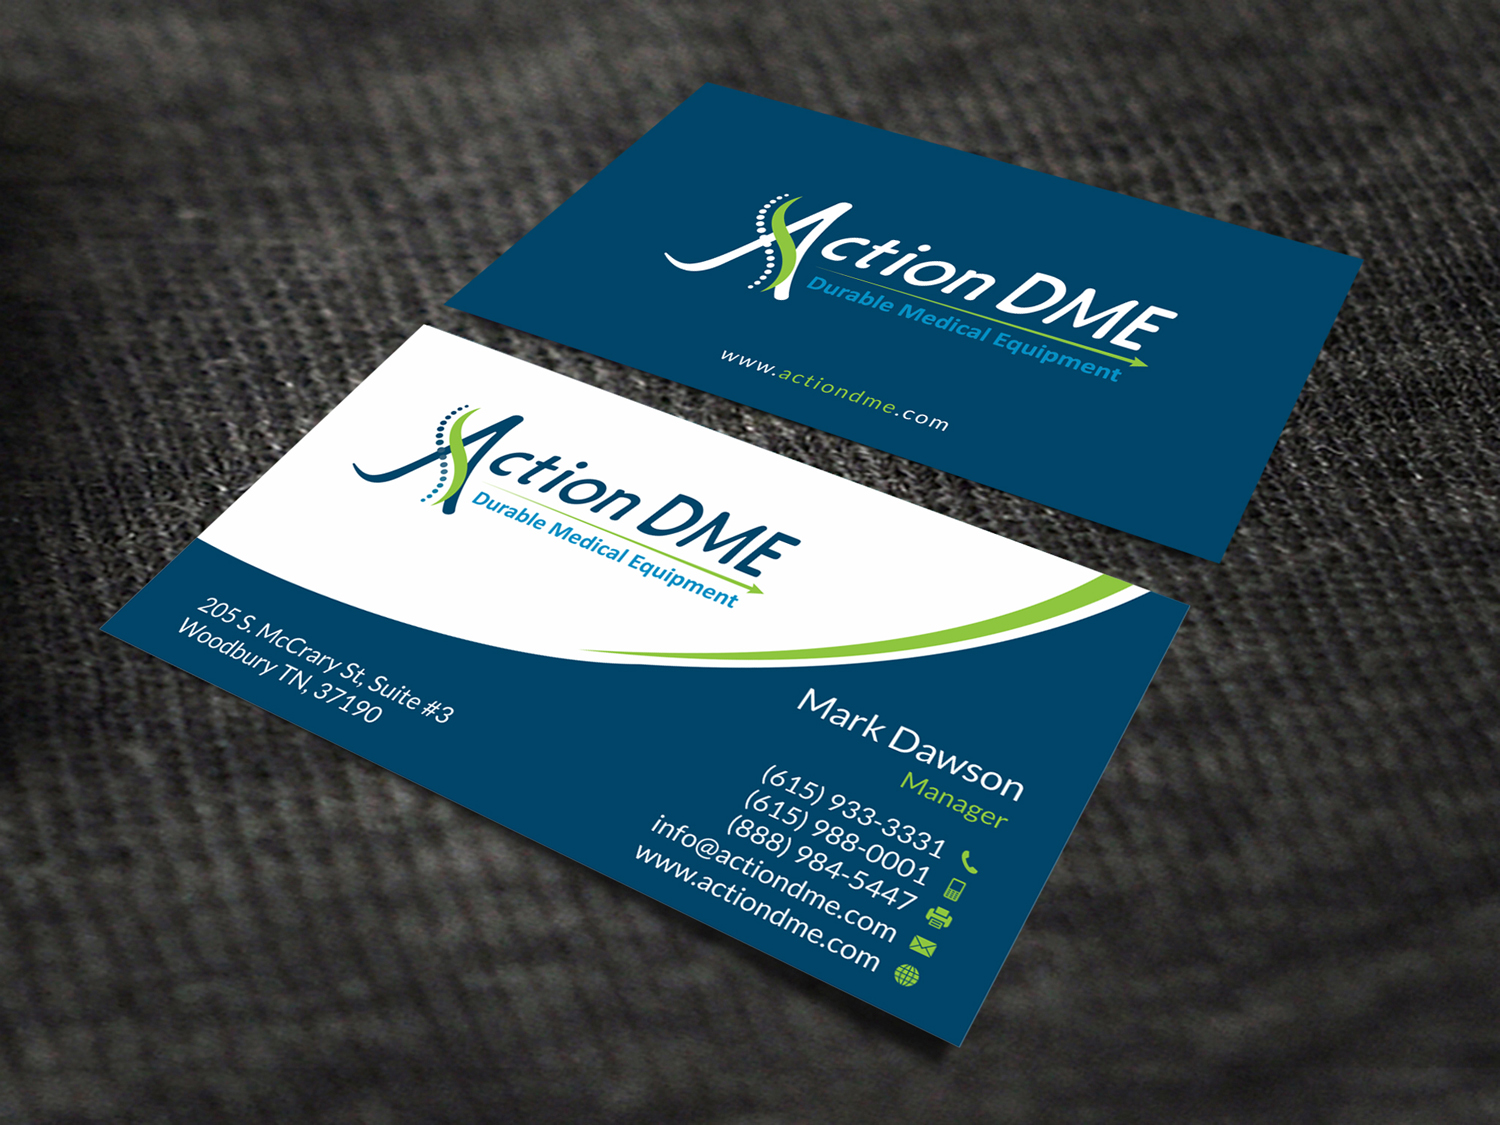 288 Professional Business Card Designs | Medical Equipment Business ...